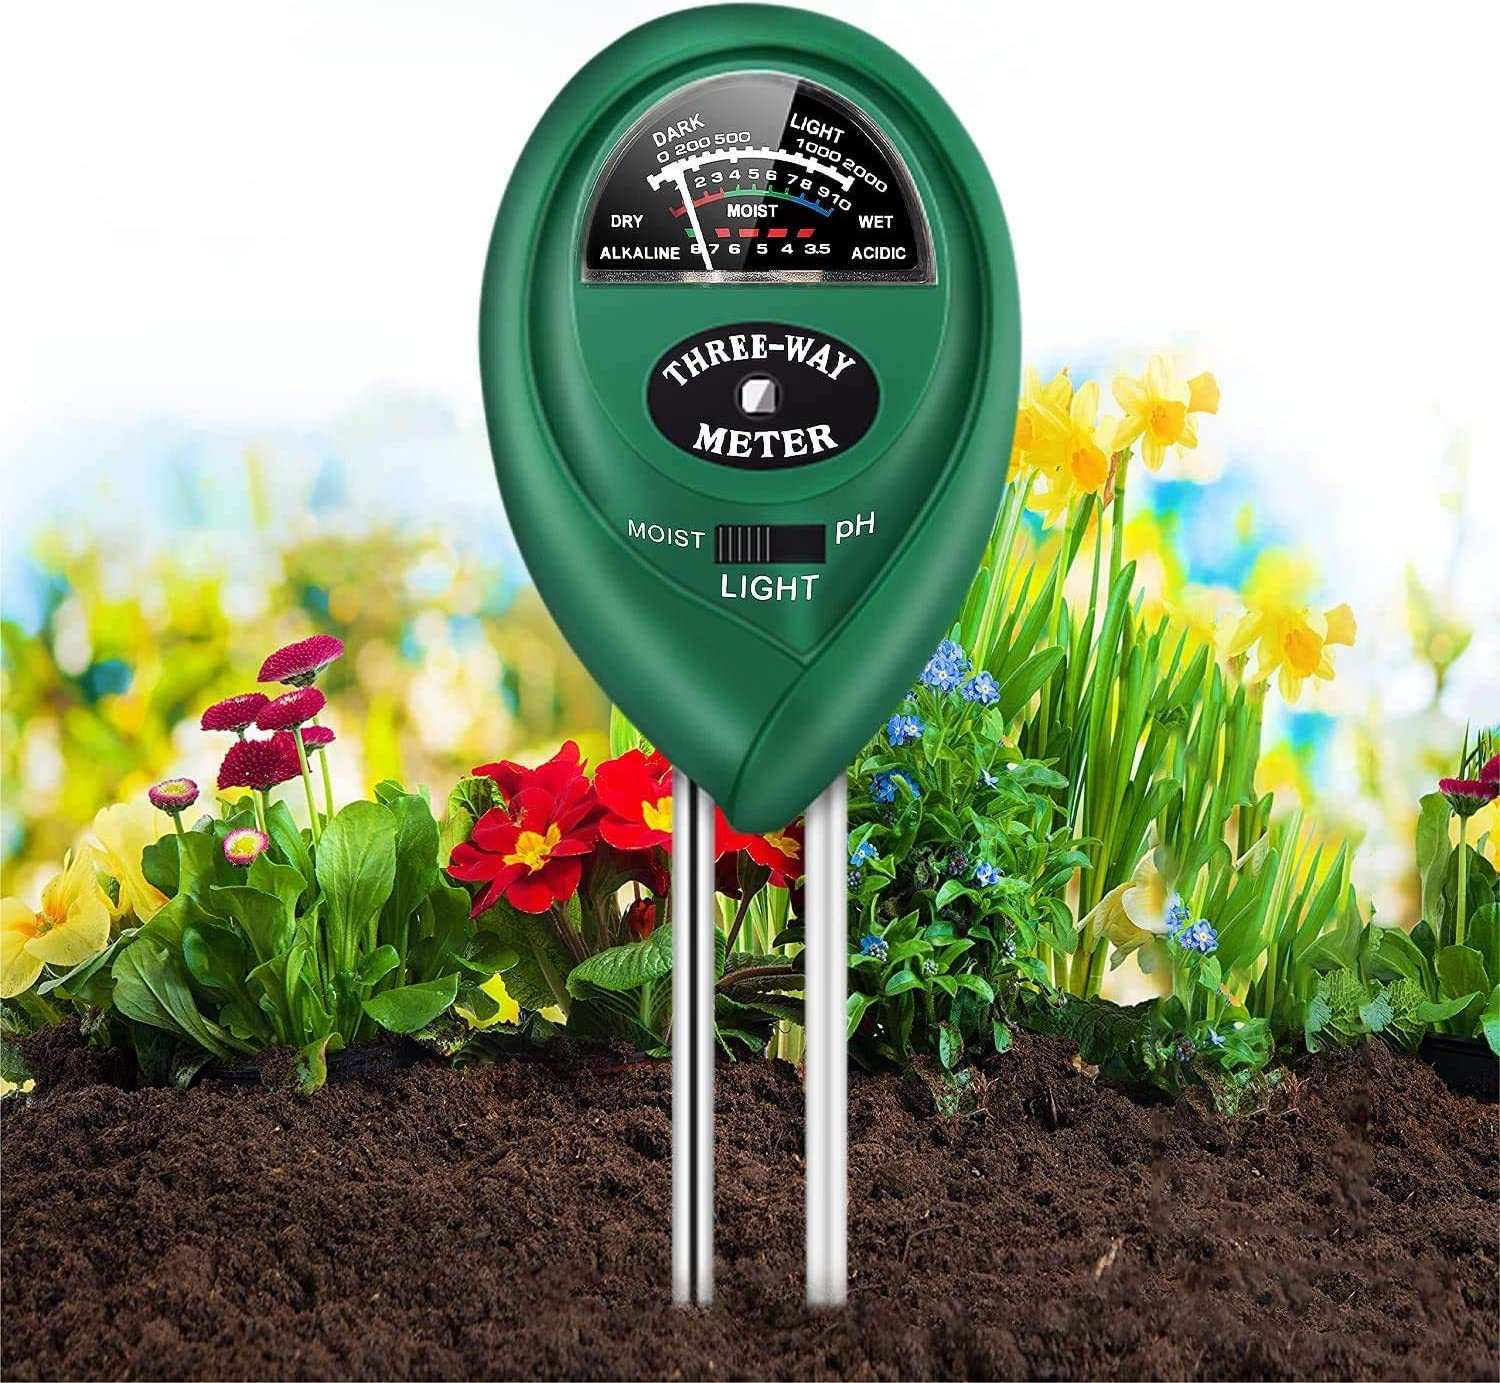 Soil pH Meter, 3-in-1 Soil Tester Kits with Moisture, Soil Moisture Meter& Soil Water Monitor, Light and PH Test for Garden, Farm, Lawn, Indoor and Outdoor(Green)